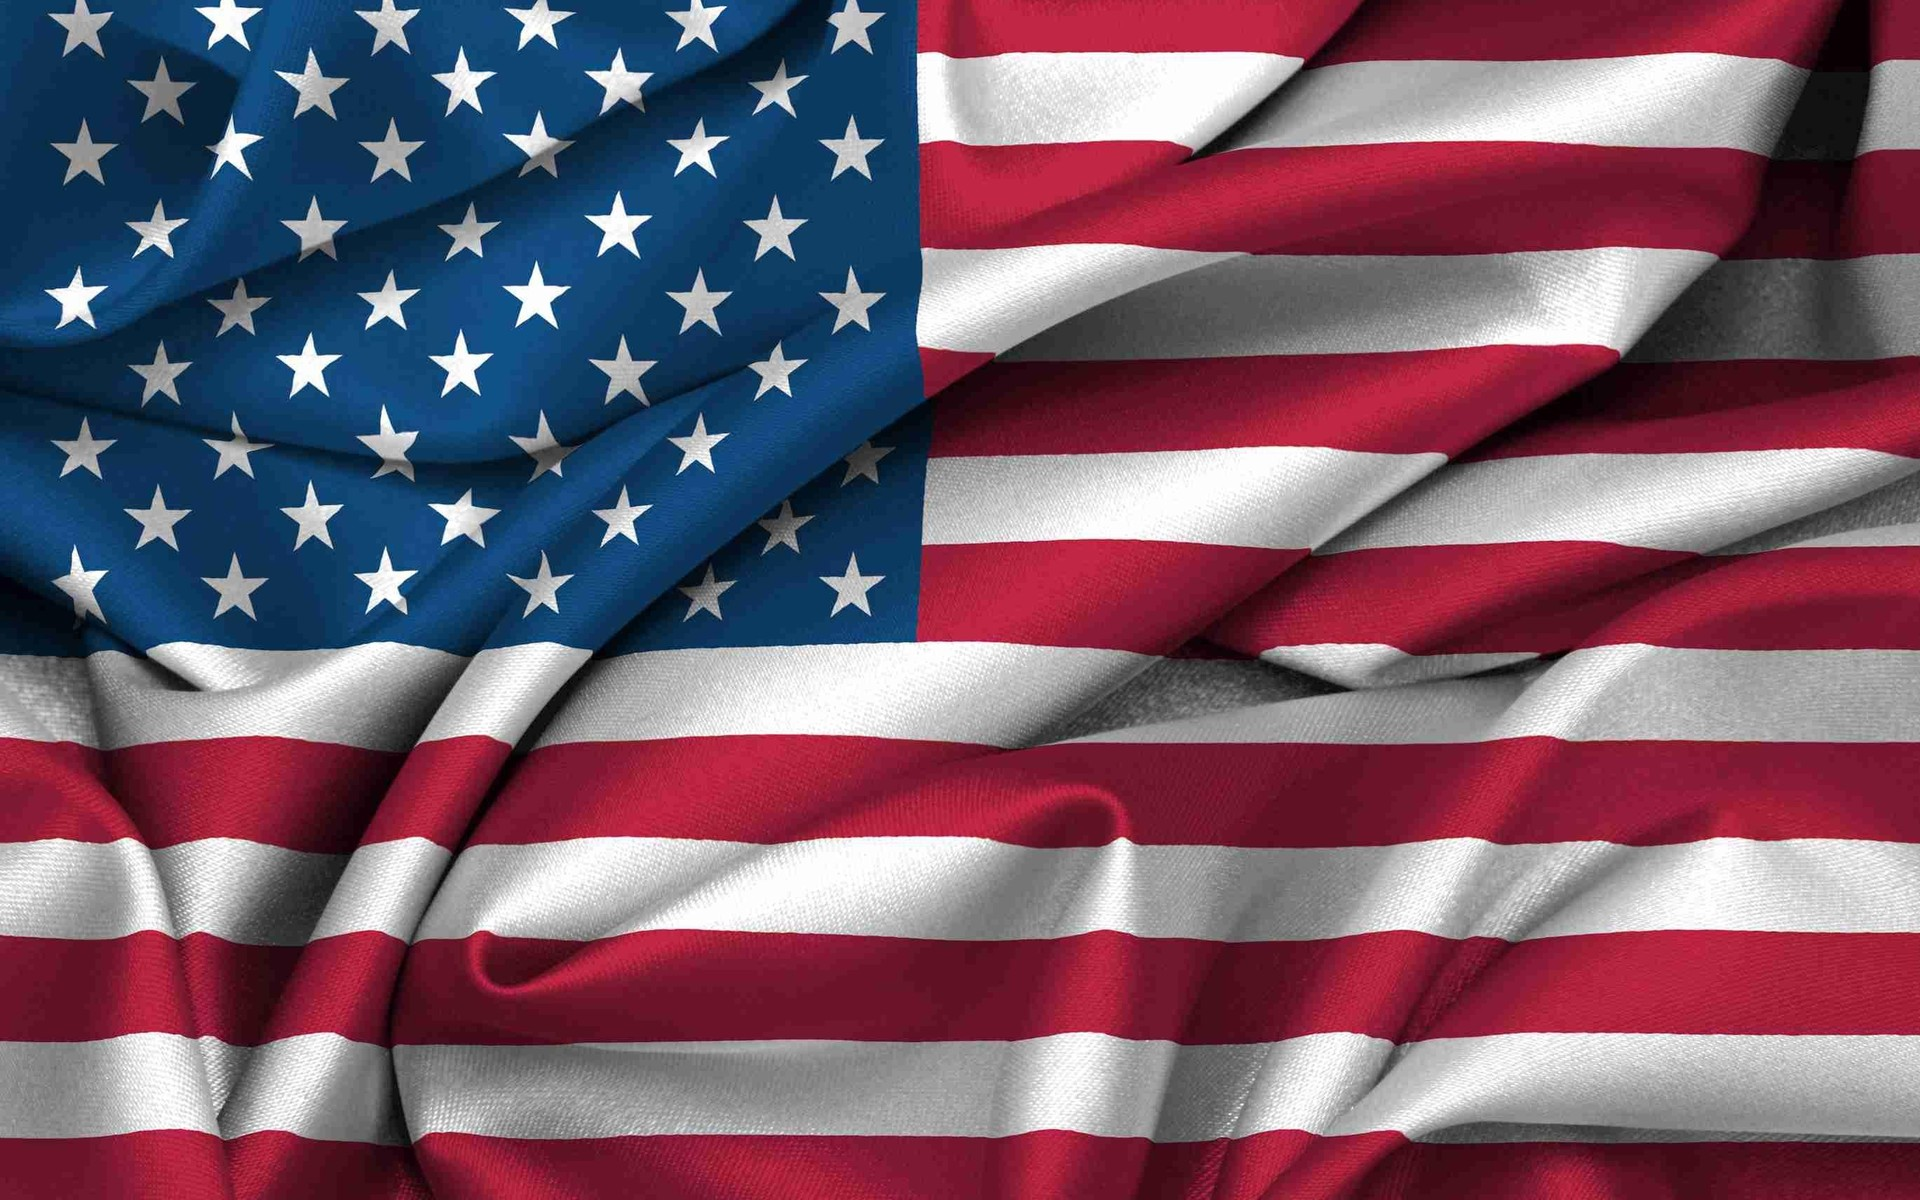 Us Flag Wallpaper Hd   wwwproteckmachinerycom 1920x1200